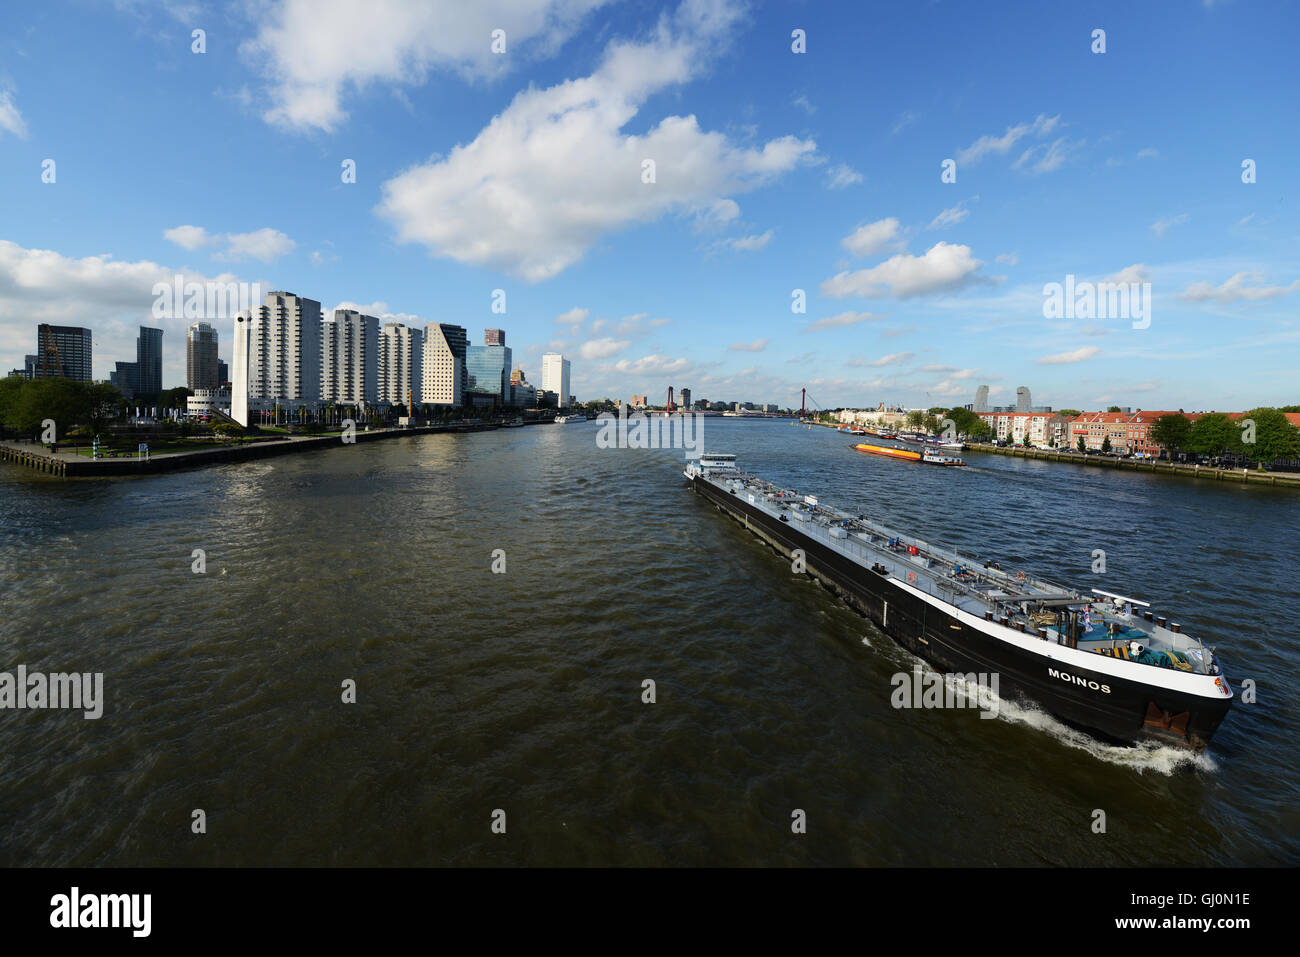 A cargo ship on the Nieuwe Maas river in Rotterdam. Stock Photo